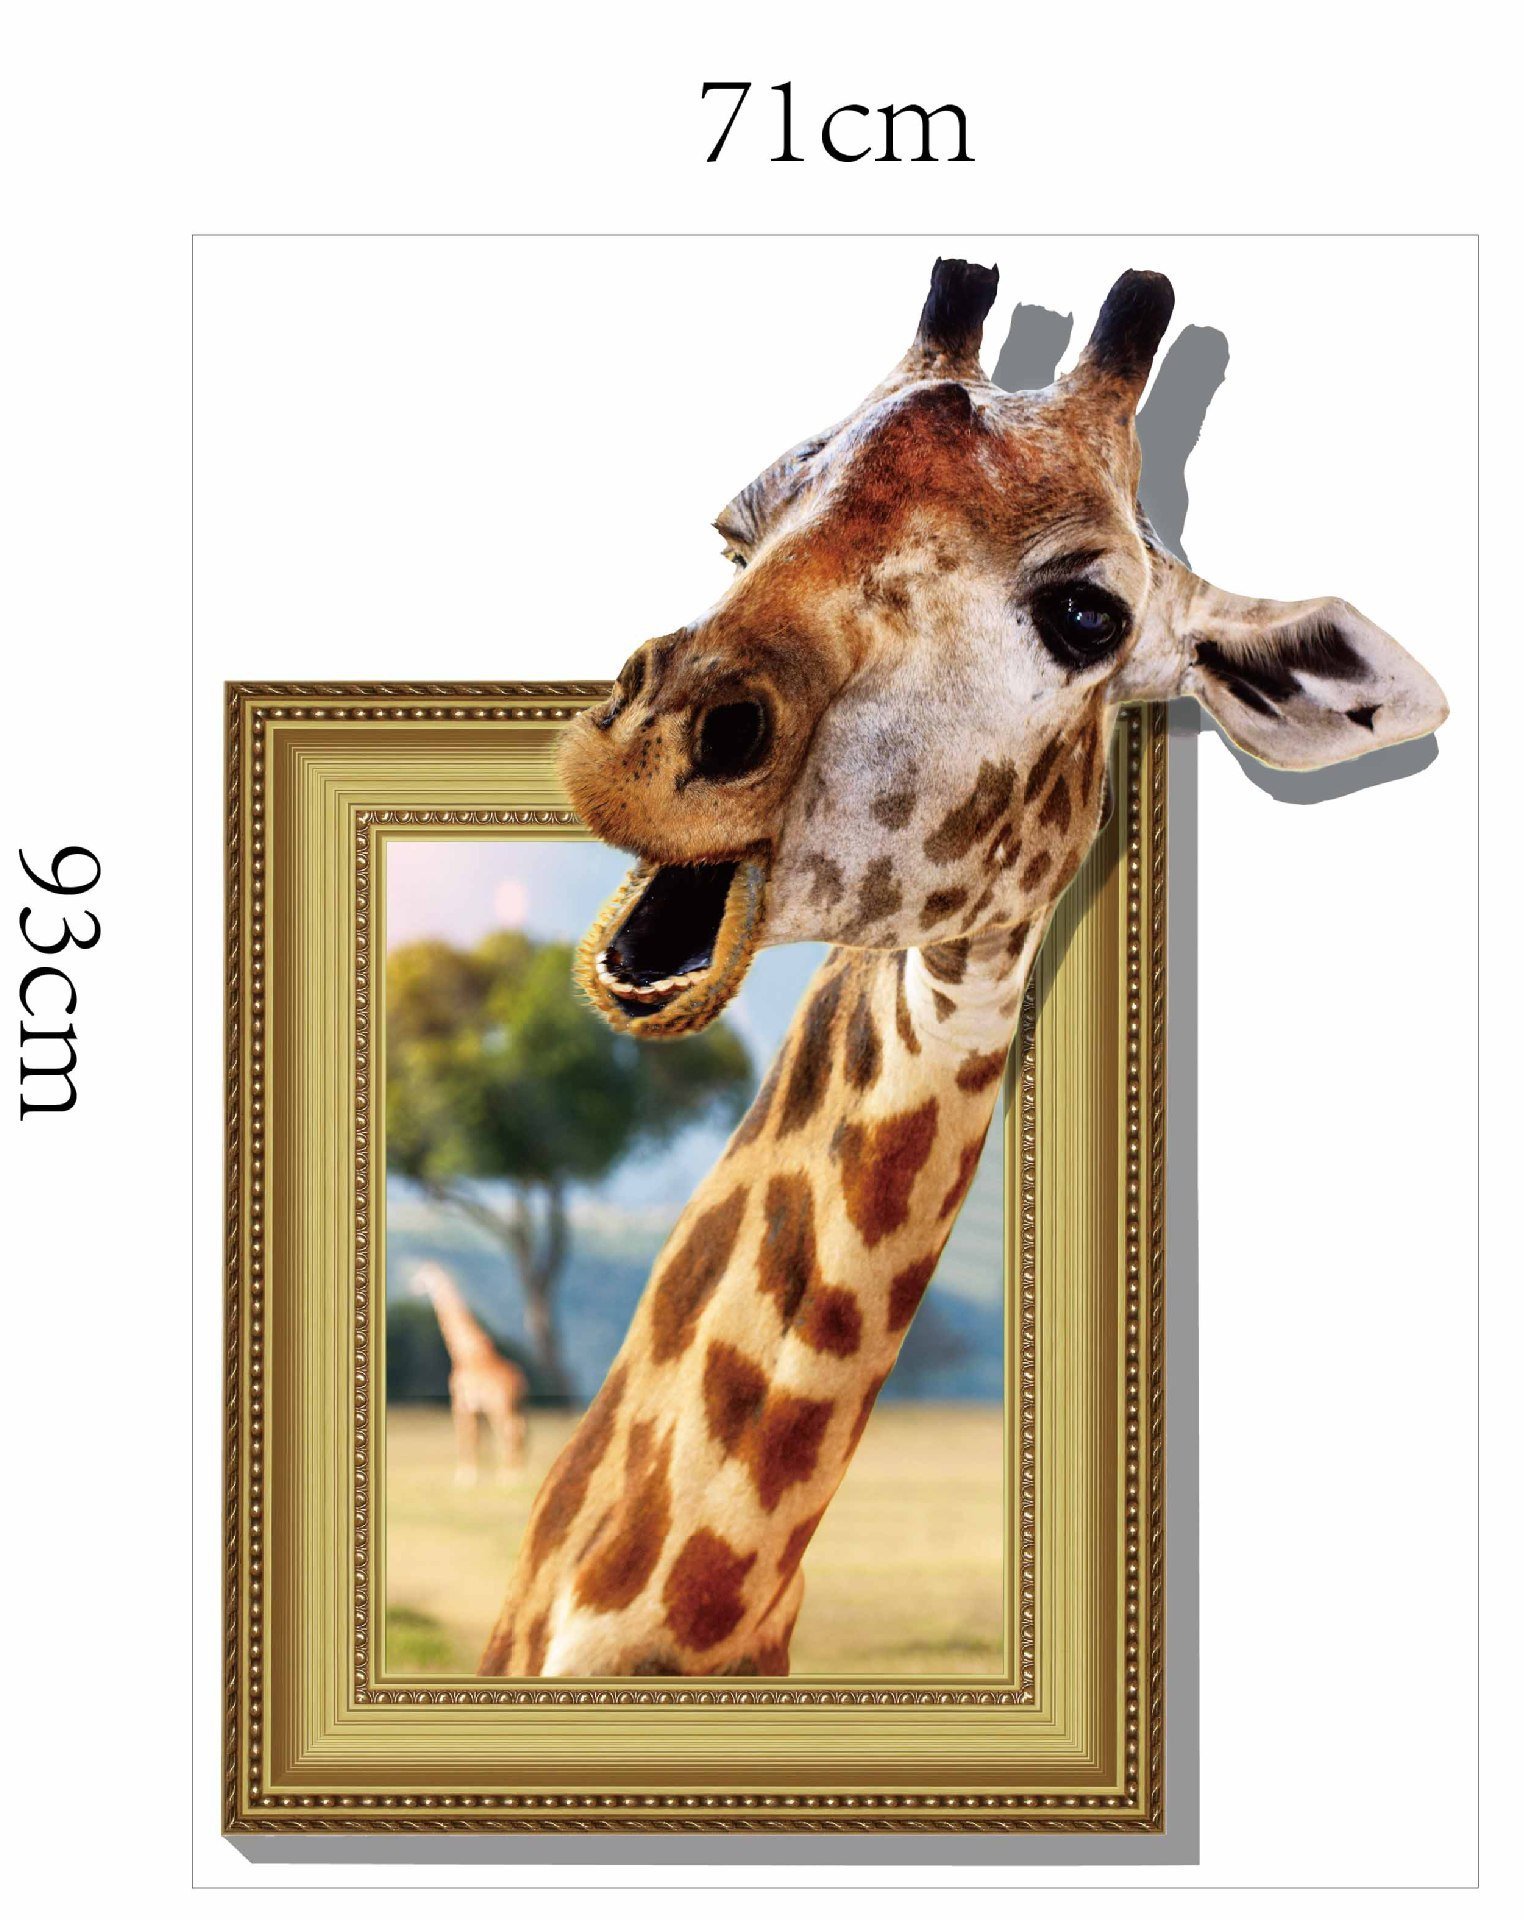 MIICO Creative 3D Animal Giraffe Removable Home Room Decorative Wall Door Decor Sticker